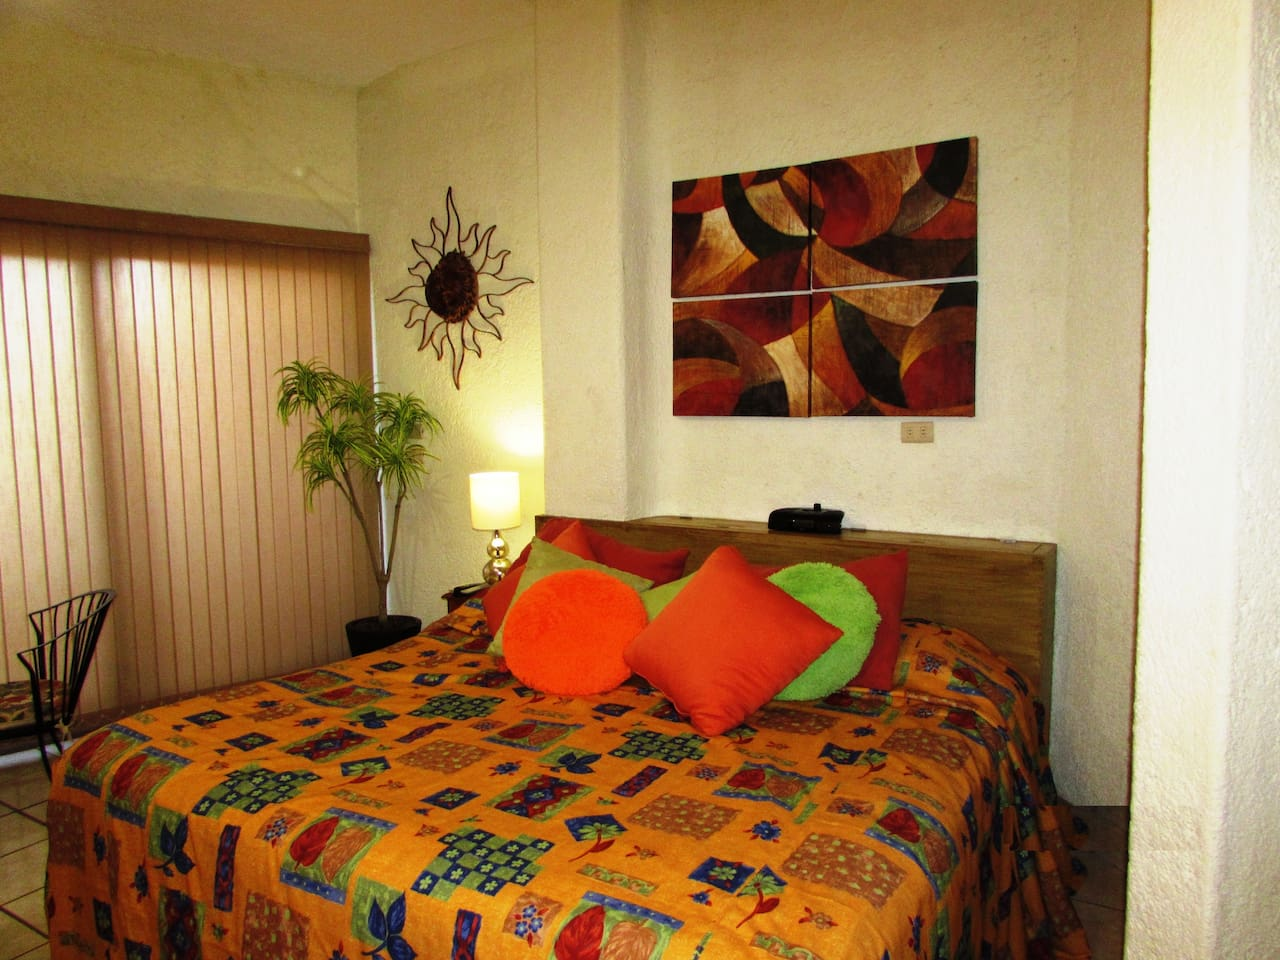 Cozy king size bed and alarm clock, vibrant decoration. Room has vertical blinds that twist to let the morning sunshine in or twist the other way for privacy.